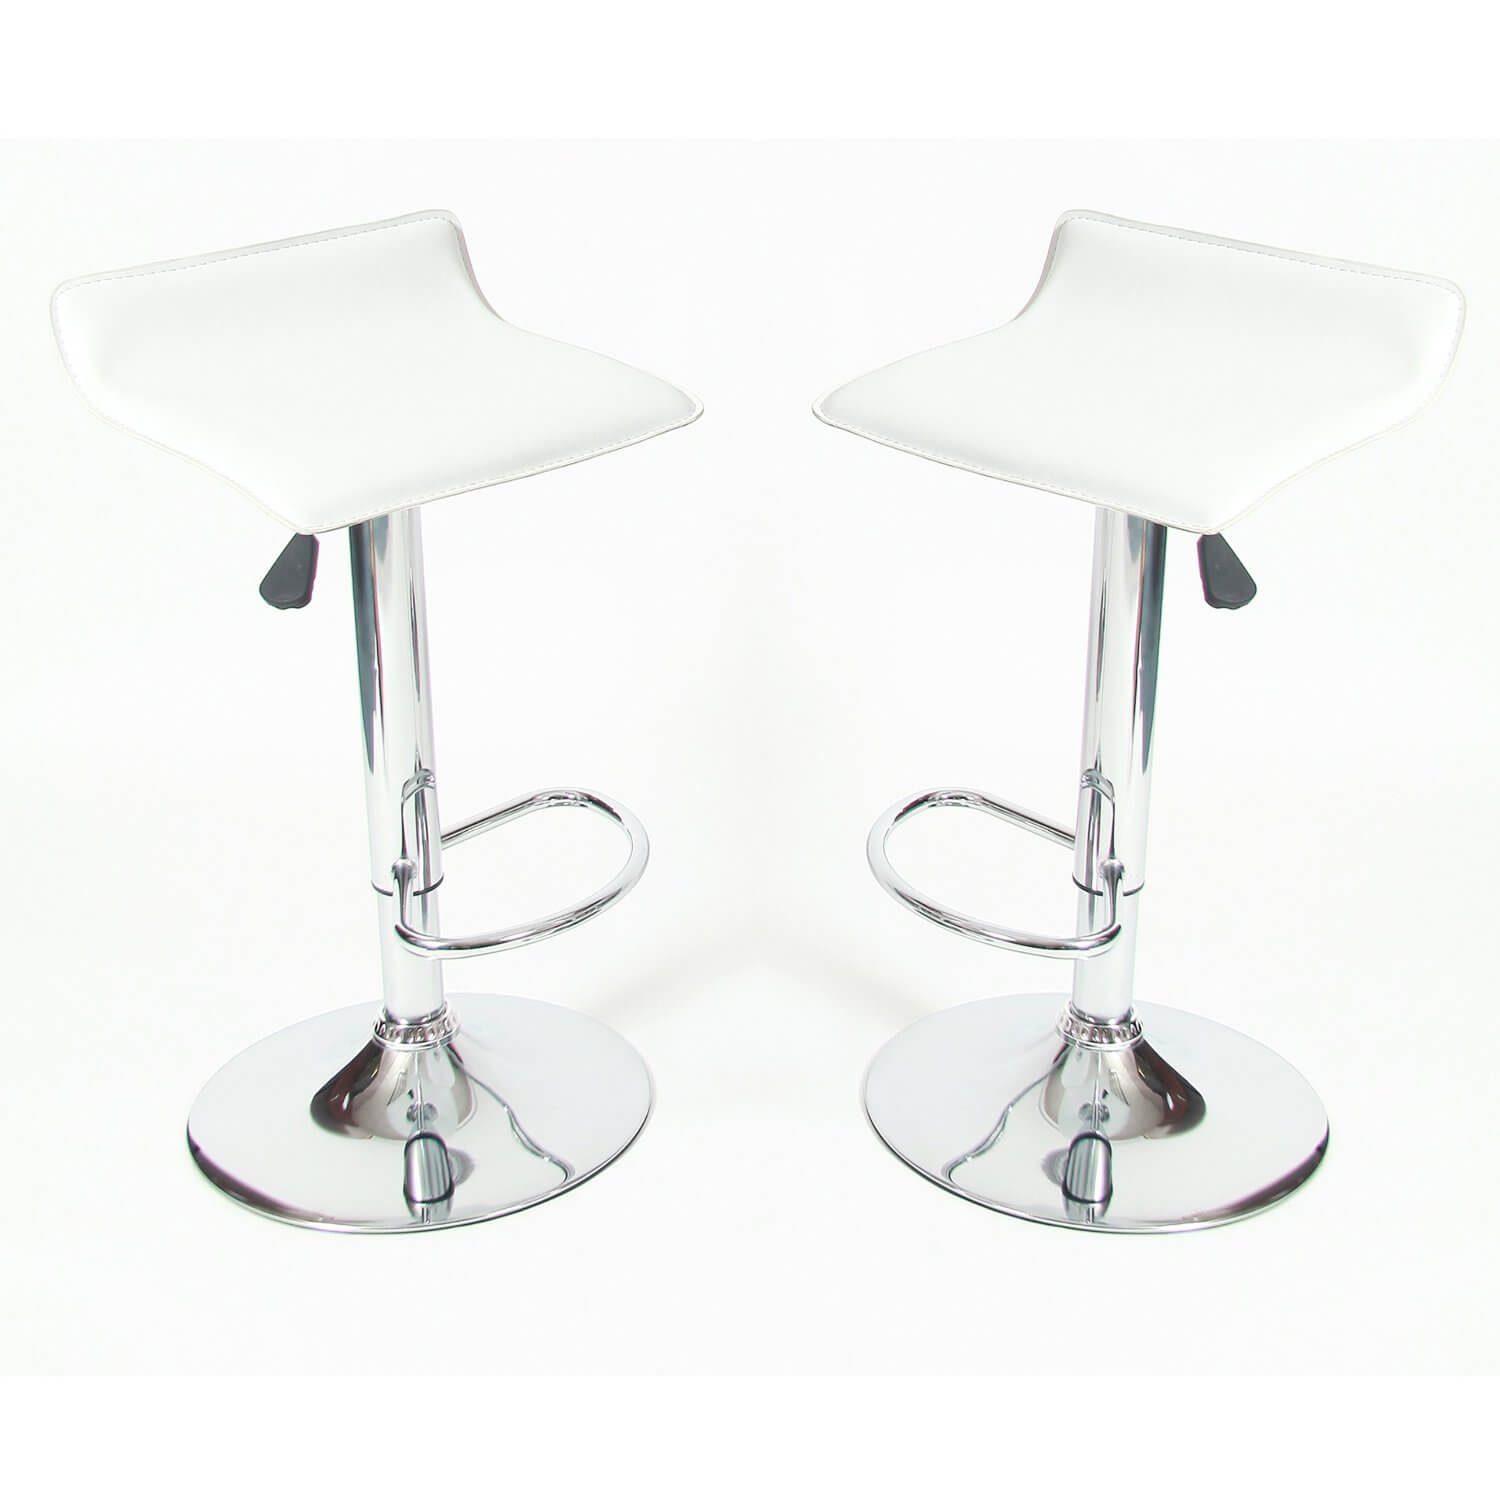 2 Adjustable White Bar Stools Set Of 2 Oxygen Bar